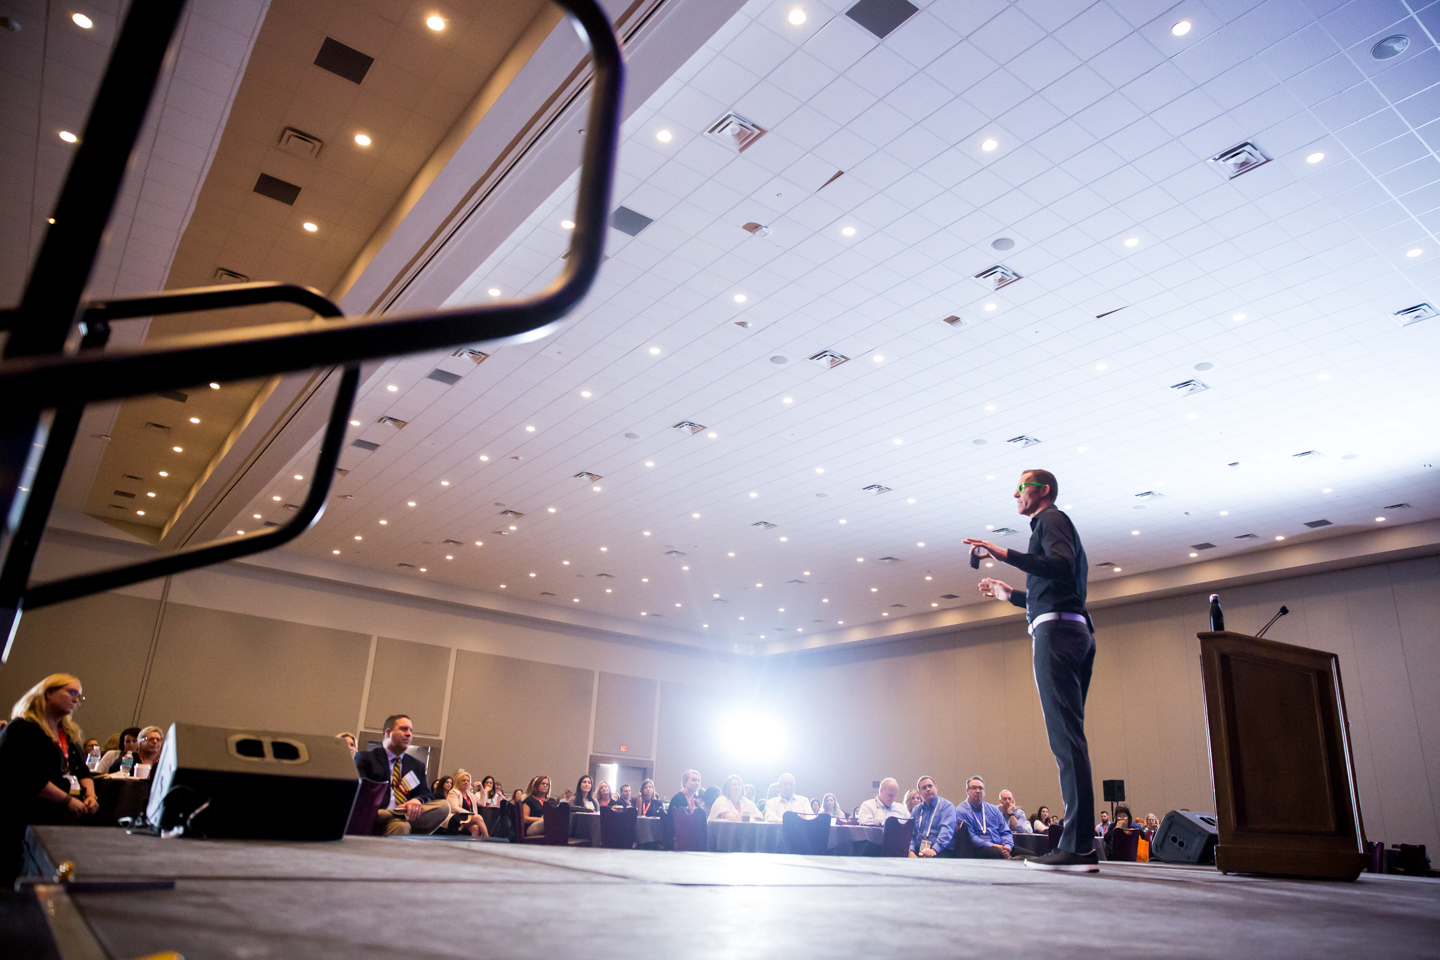 AAPPR-Erik-green-glasses-orlando-professional-photography-corporate-conference.jpeg